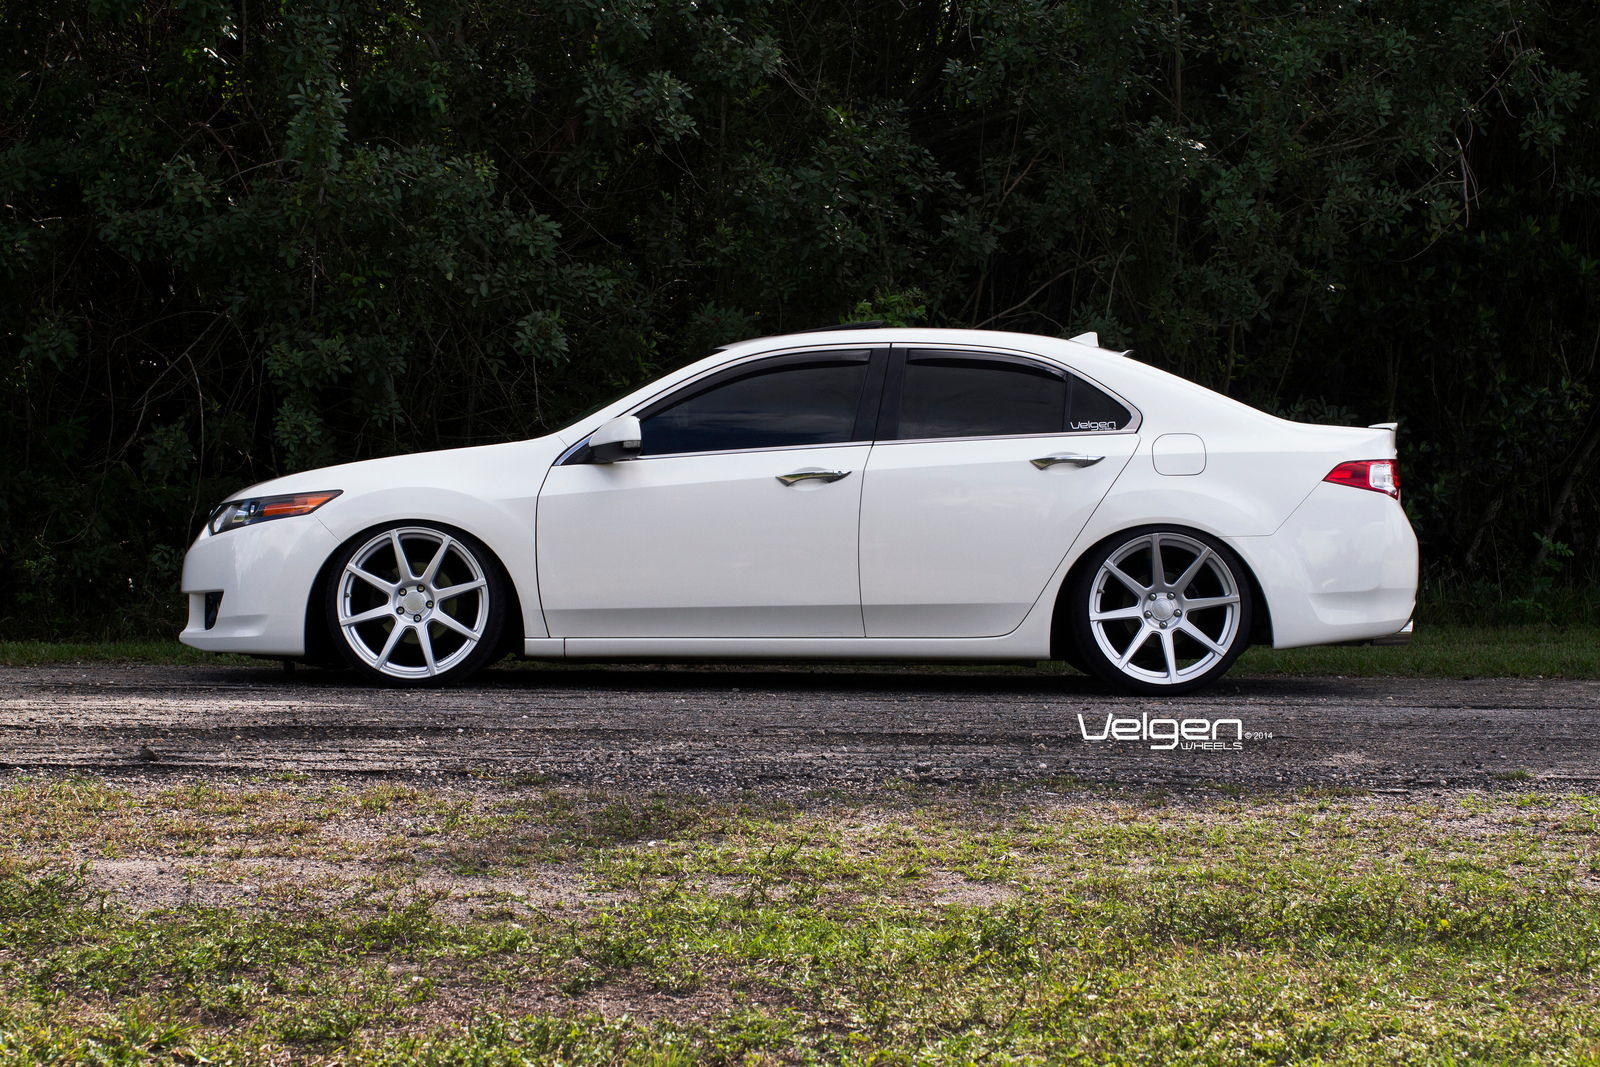 Acura TSX on Velgen Wheels - 6SpeedOnline - Porsche Forum ...